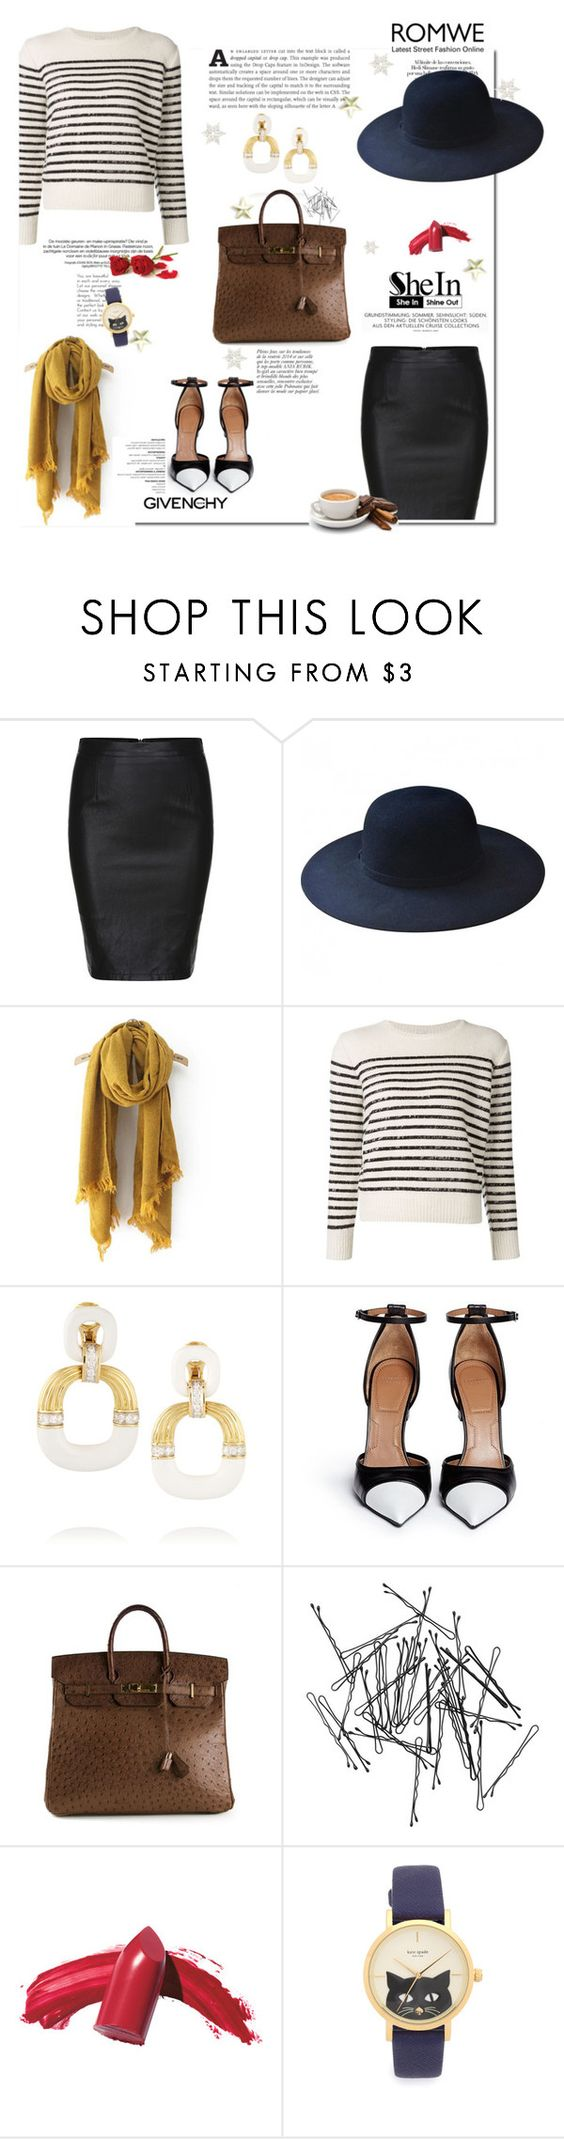 """Estamos vivos e isto é tudo É sobretudo a lei Dessa infinita highway"" by railda-pereira ❤ liked on Polyvore featuring Urban Outfitters, Yves Saint Laurent, David Webb, Givenchy, Hermès, Anja, Monki, Elizabeth Arden, Kate Spade and women's clothing"